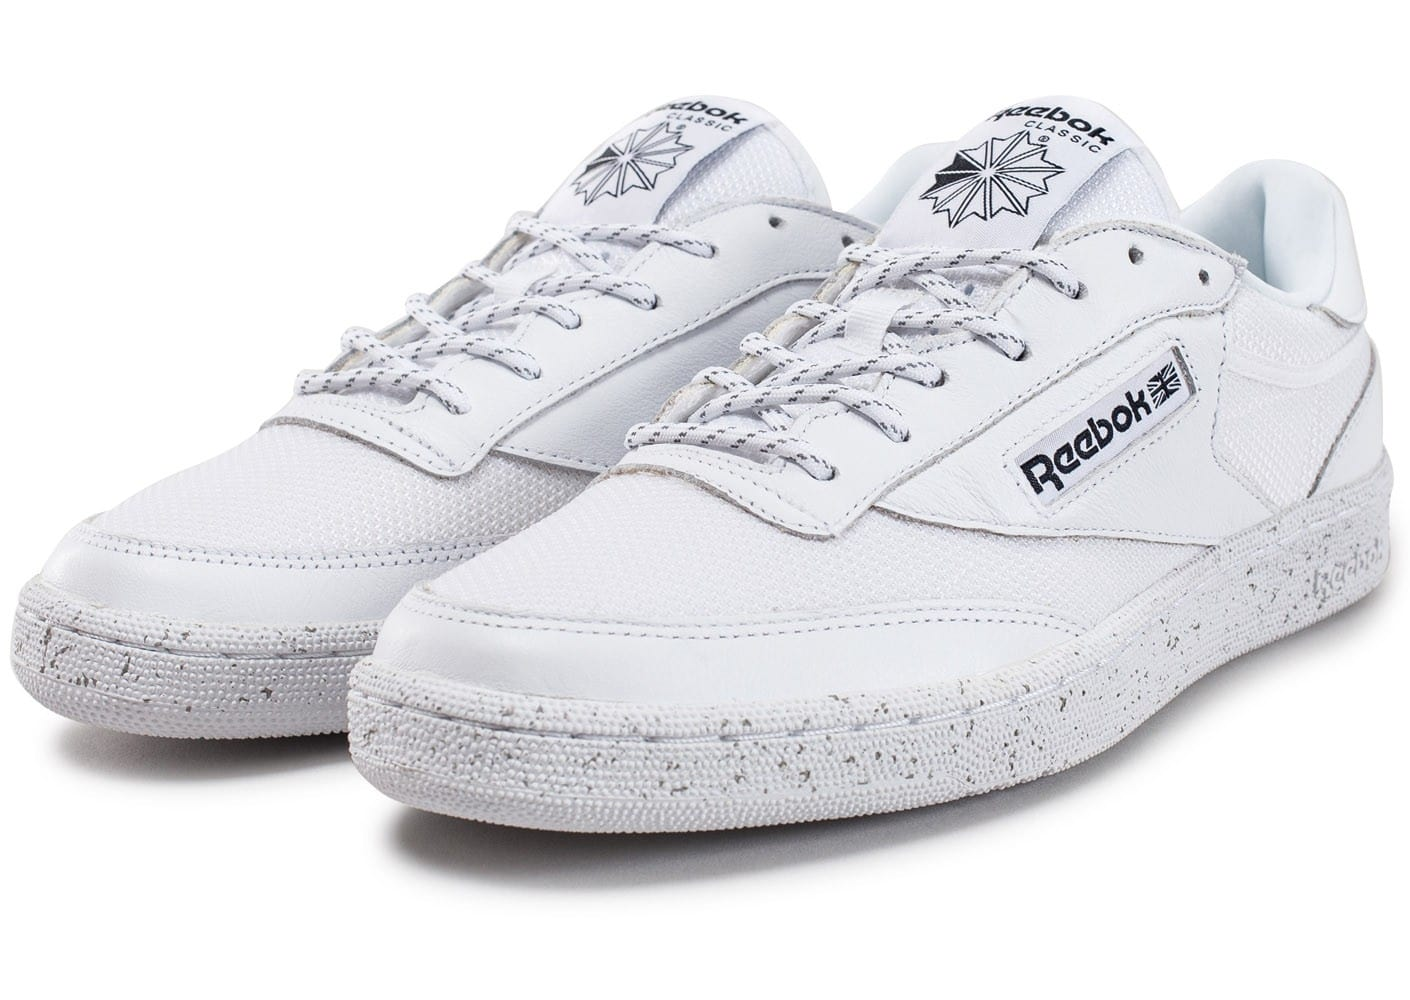 reebok club c 85 st blanche chaussures homme chausport. Black Bedroom Furniture Sets. Home Design Ideas